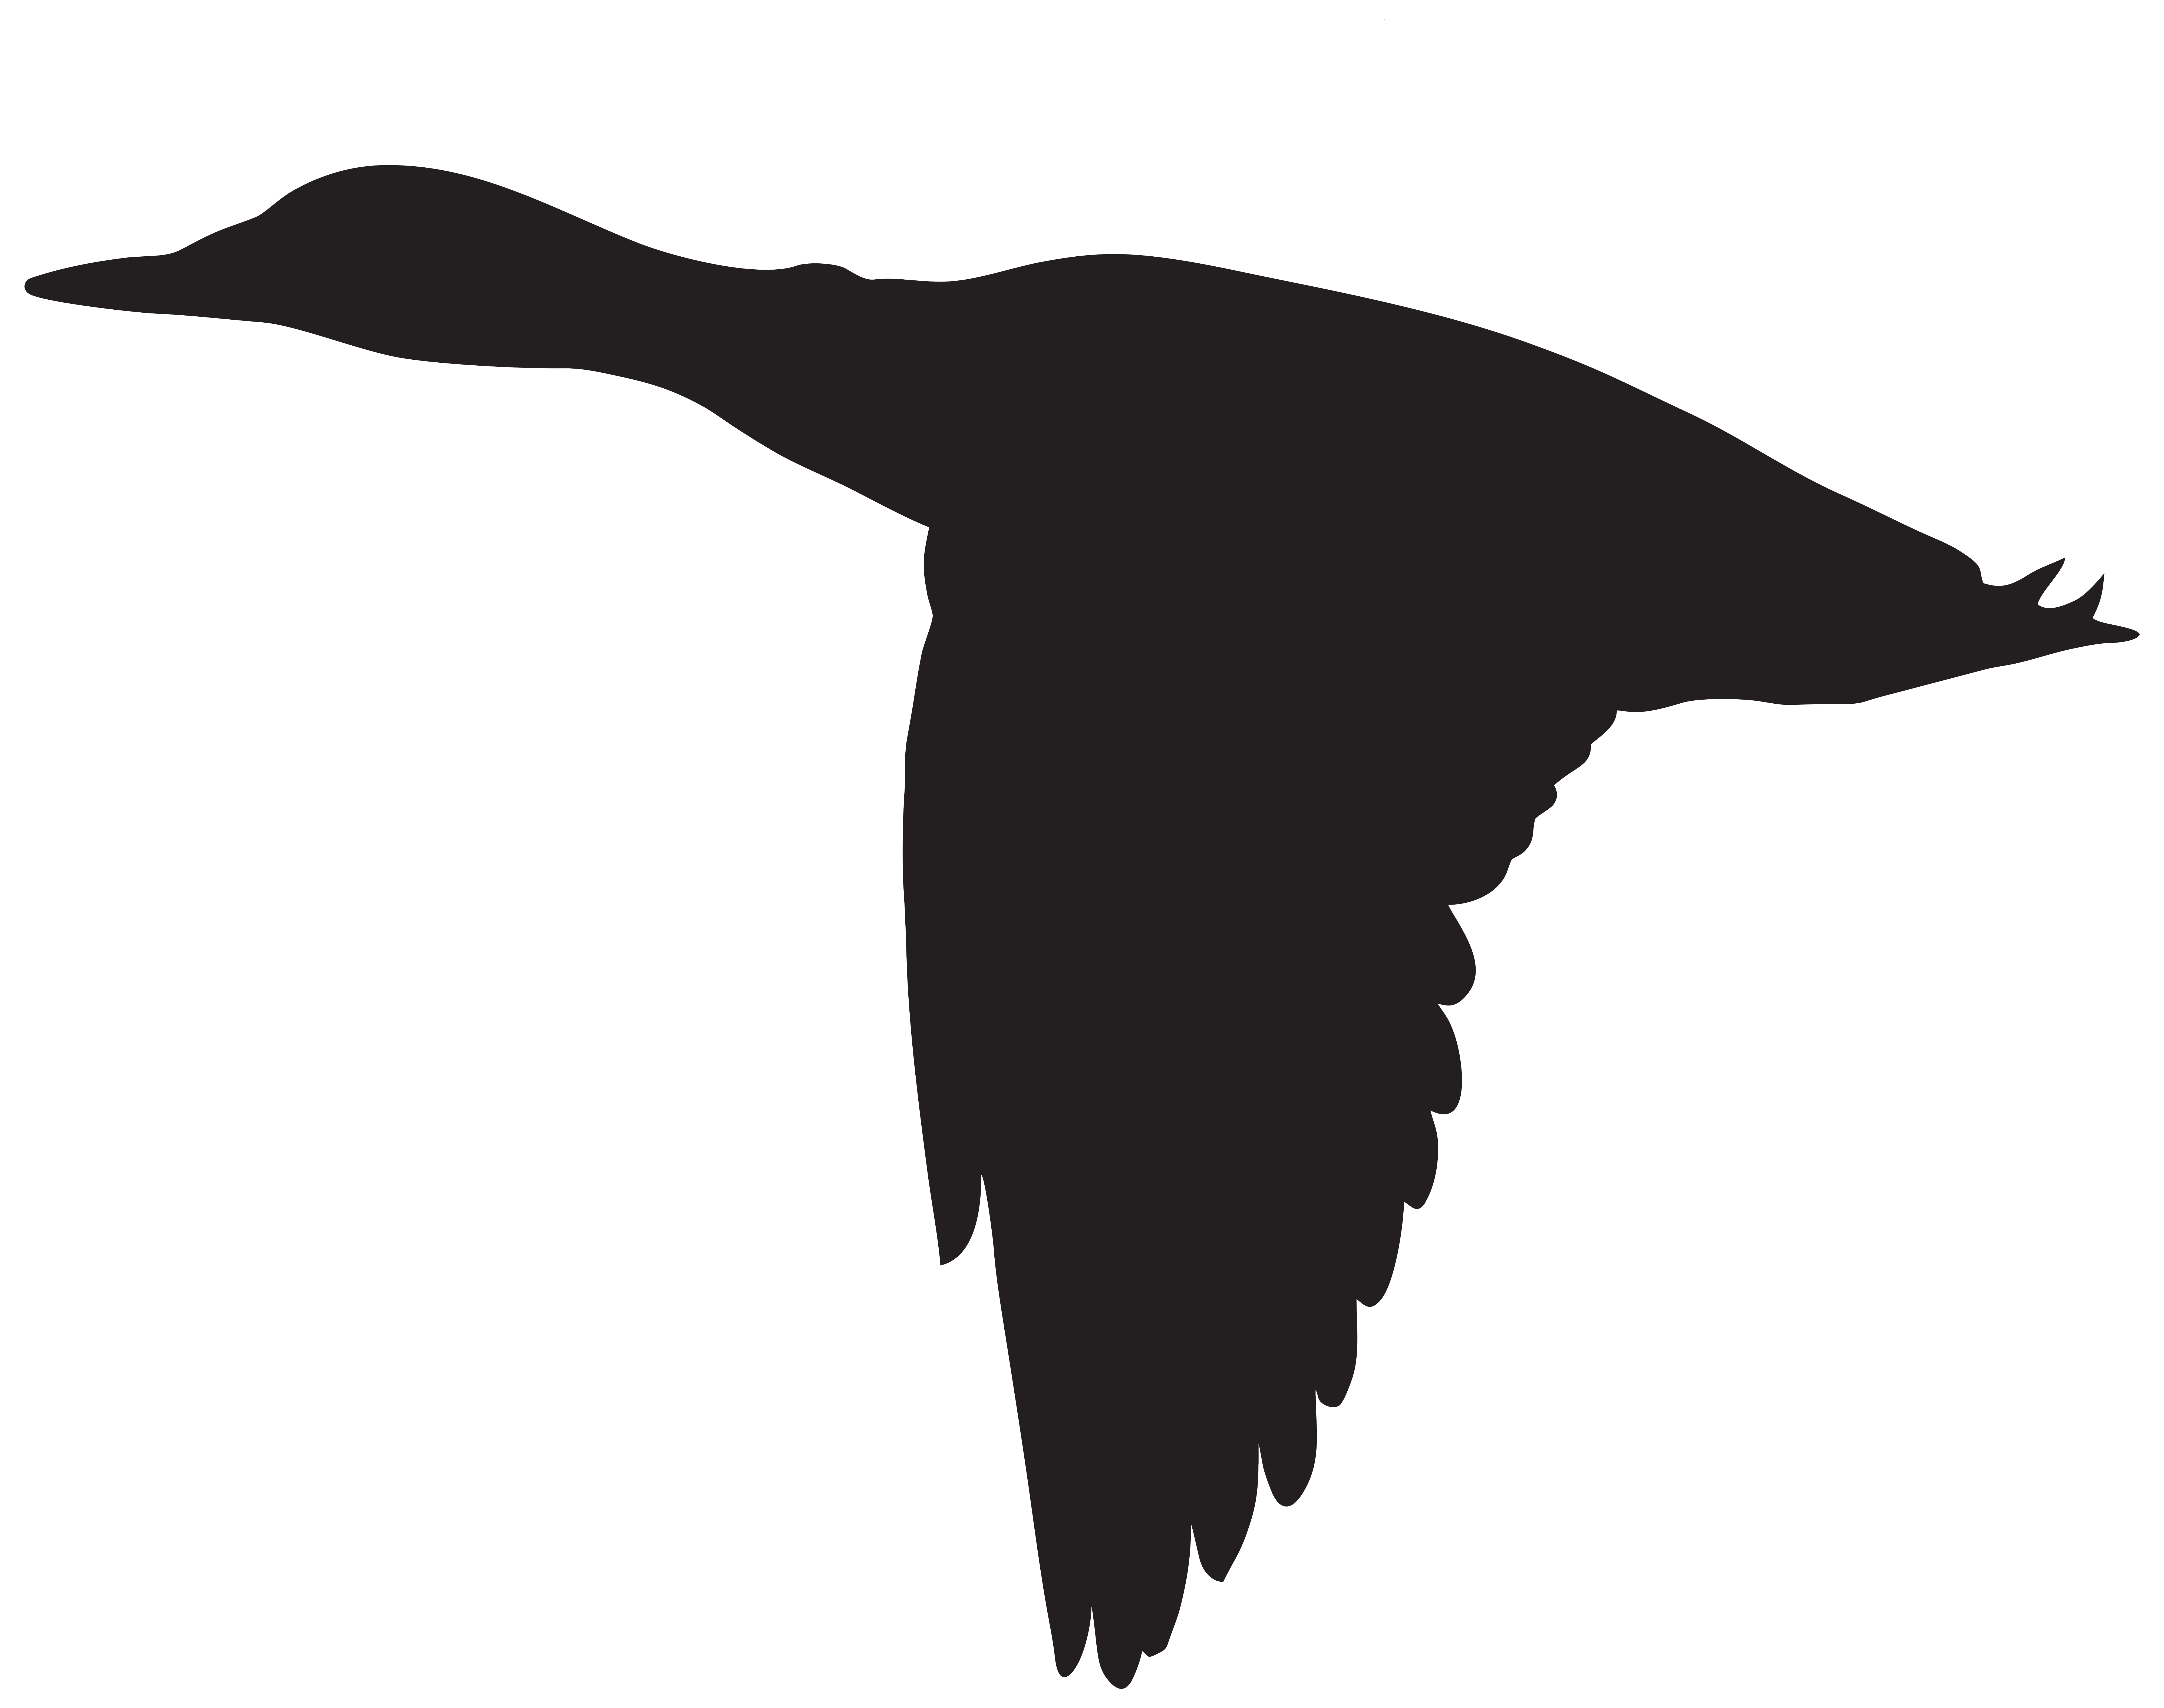 Duck Flying Silhouette PNG Clip Art Image.